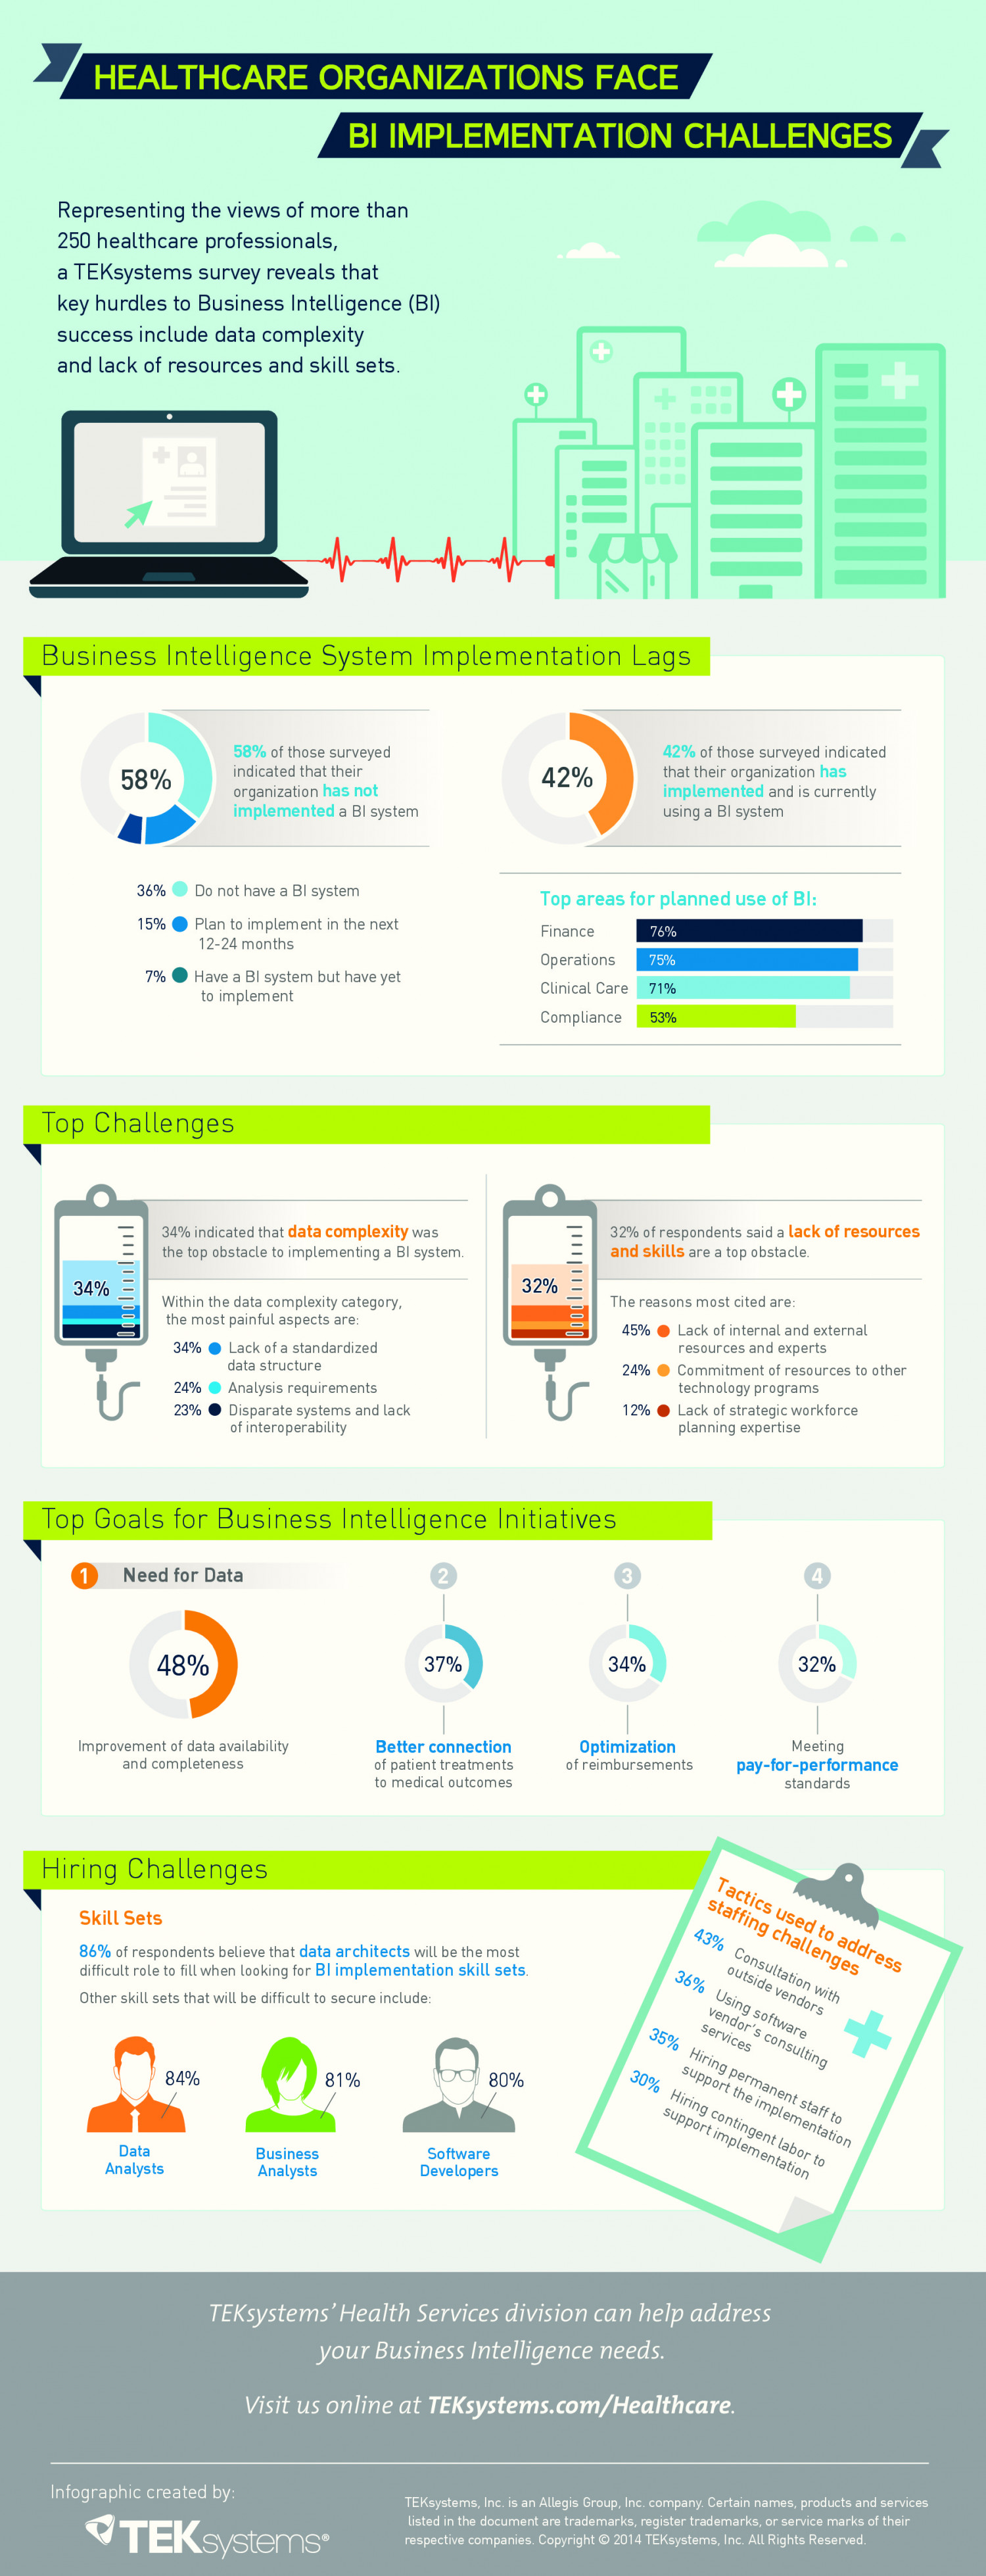 Healthcare Organizations Face BI Implementation Challenges Infographic